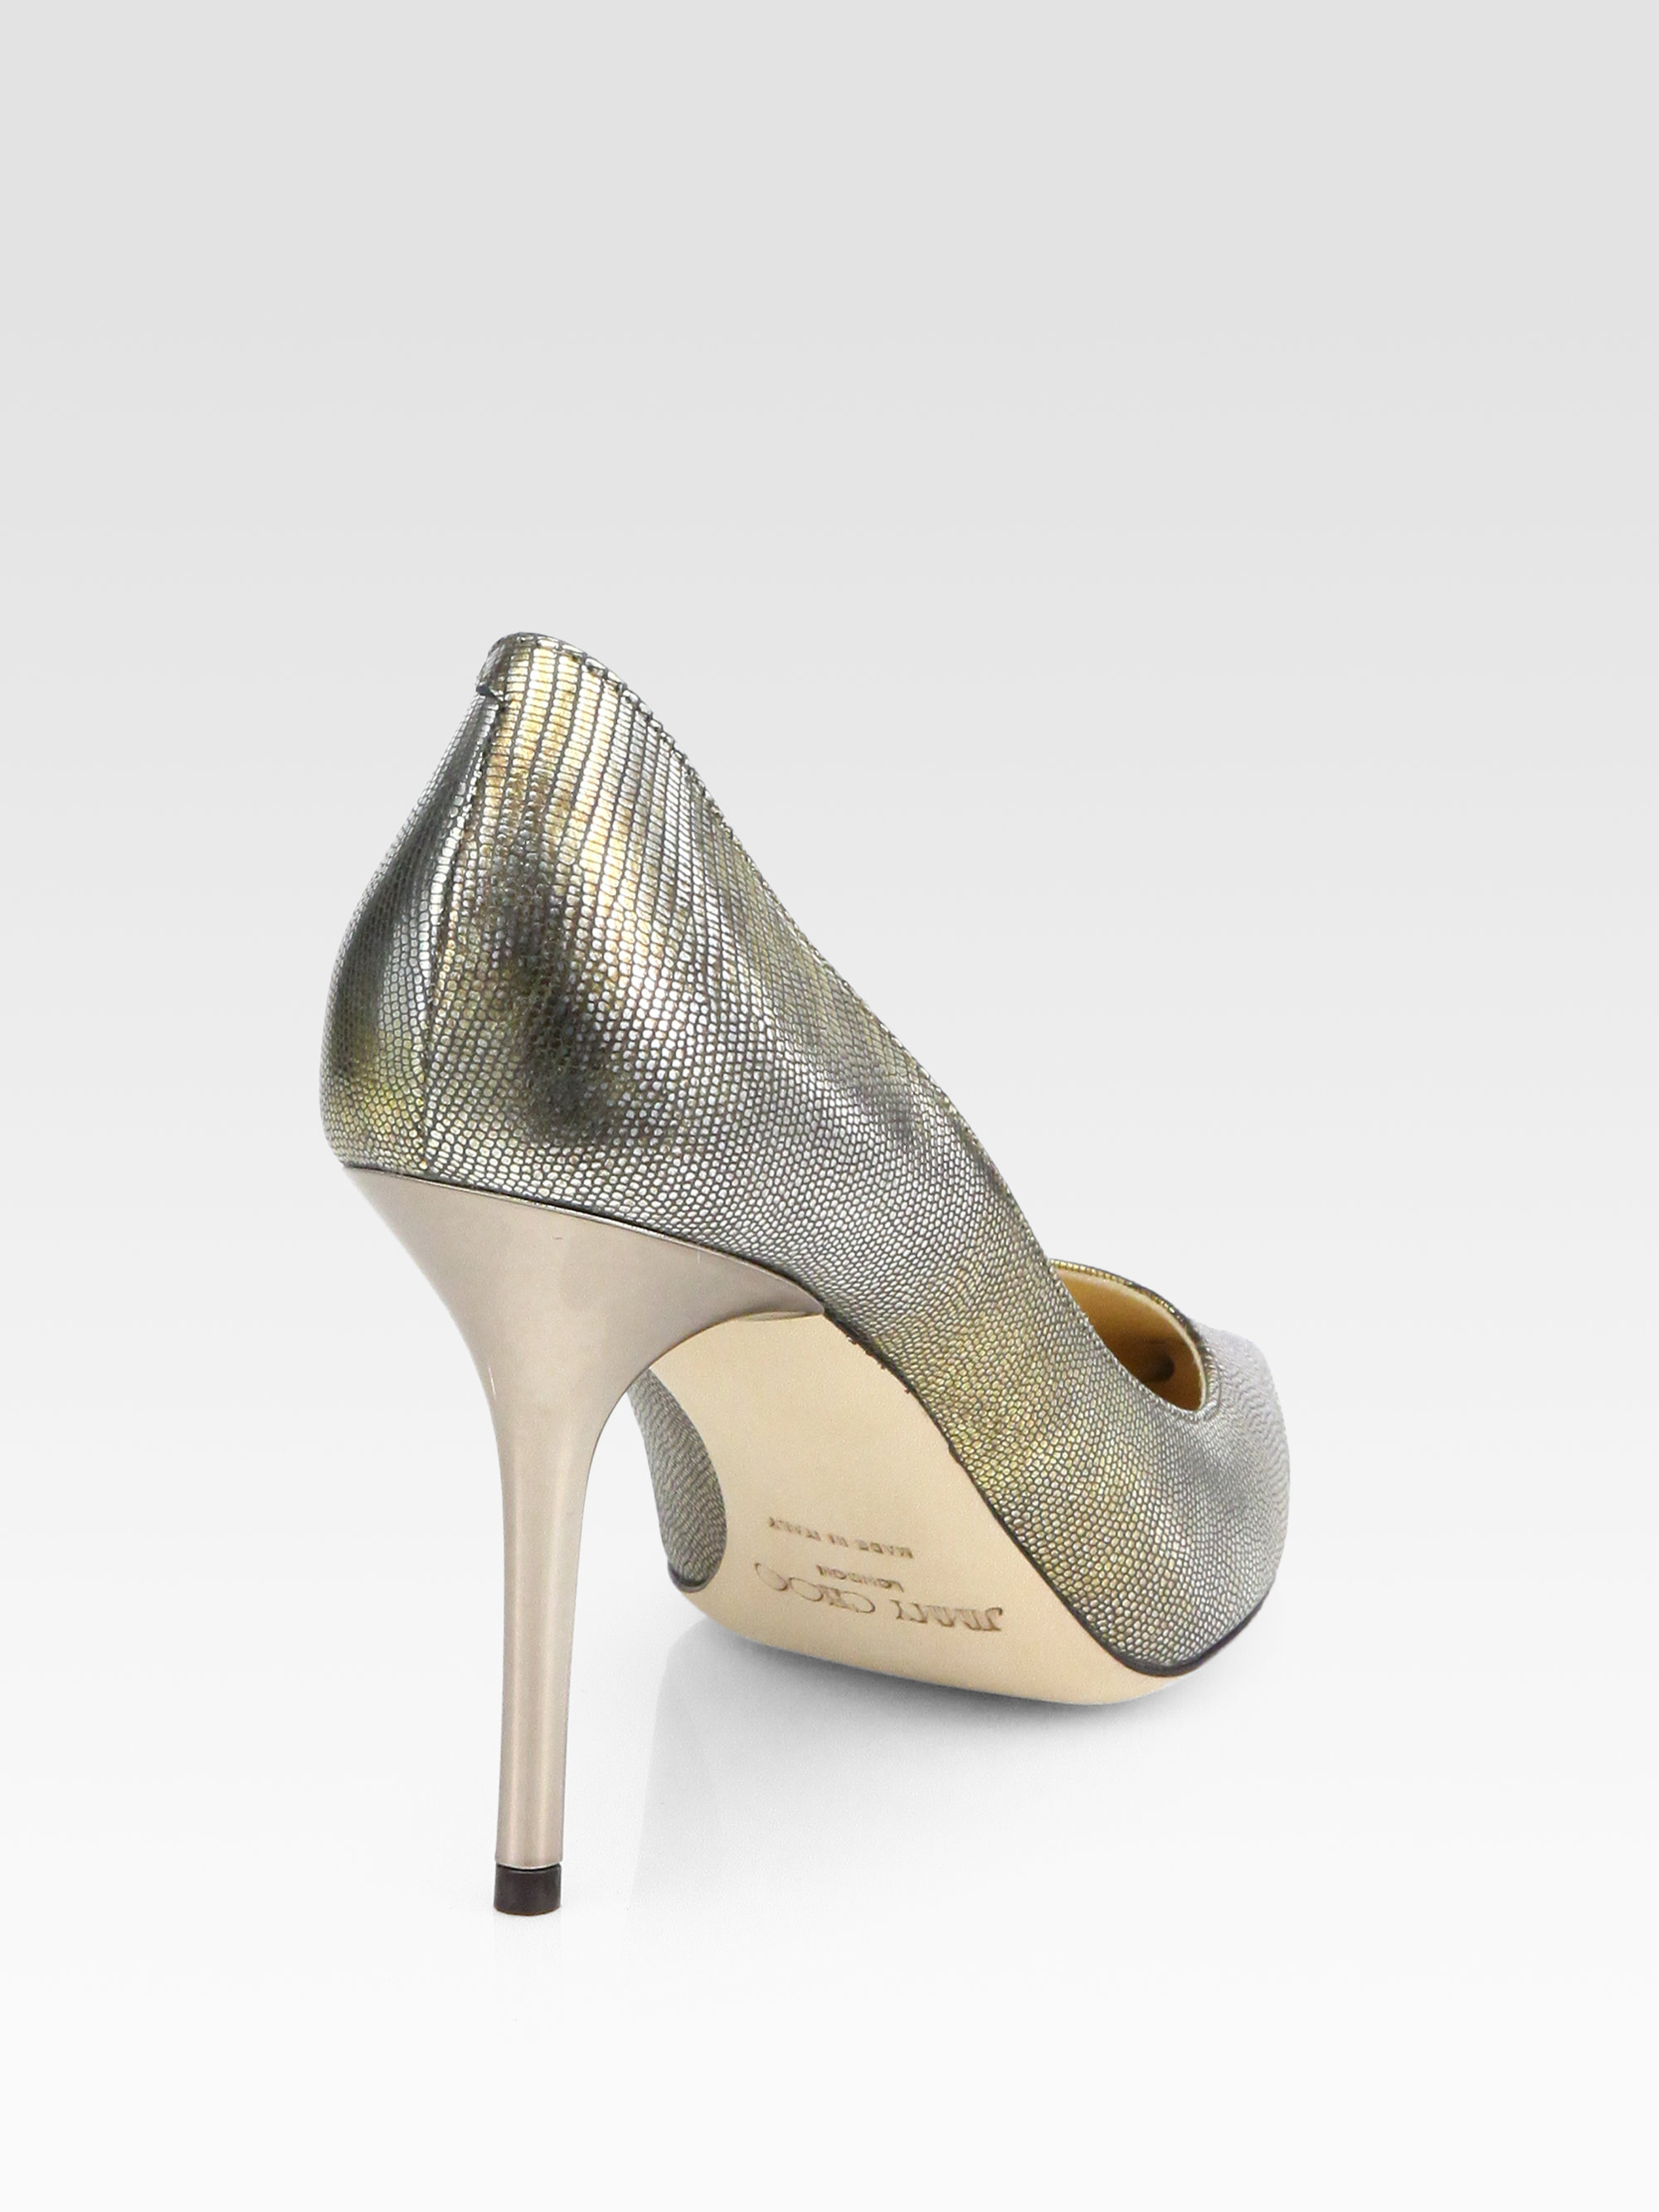 outlet shop Jimmy Choo Metallic Agnes Pumps clearance discounts outlet how much 100% original cheap price discount real LoFmIrk1